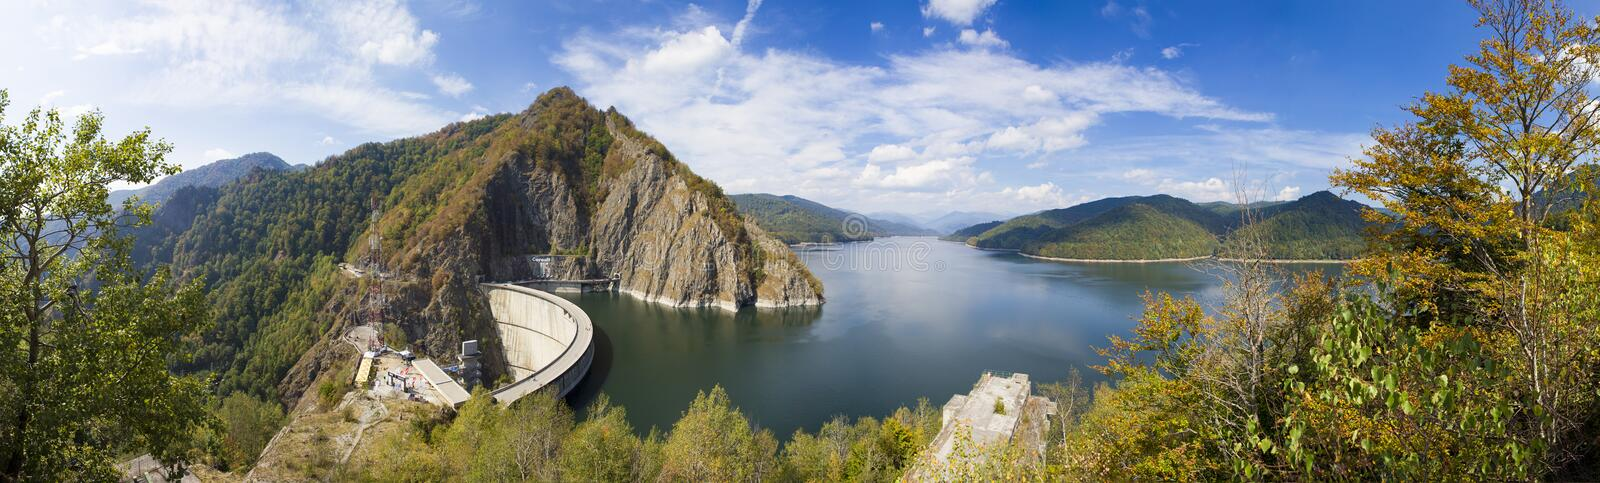 Vidraru dam and the river view from Statue of Prometheus stock photos